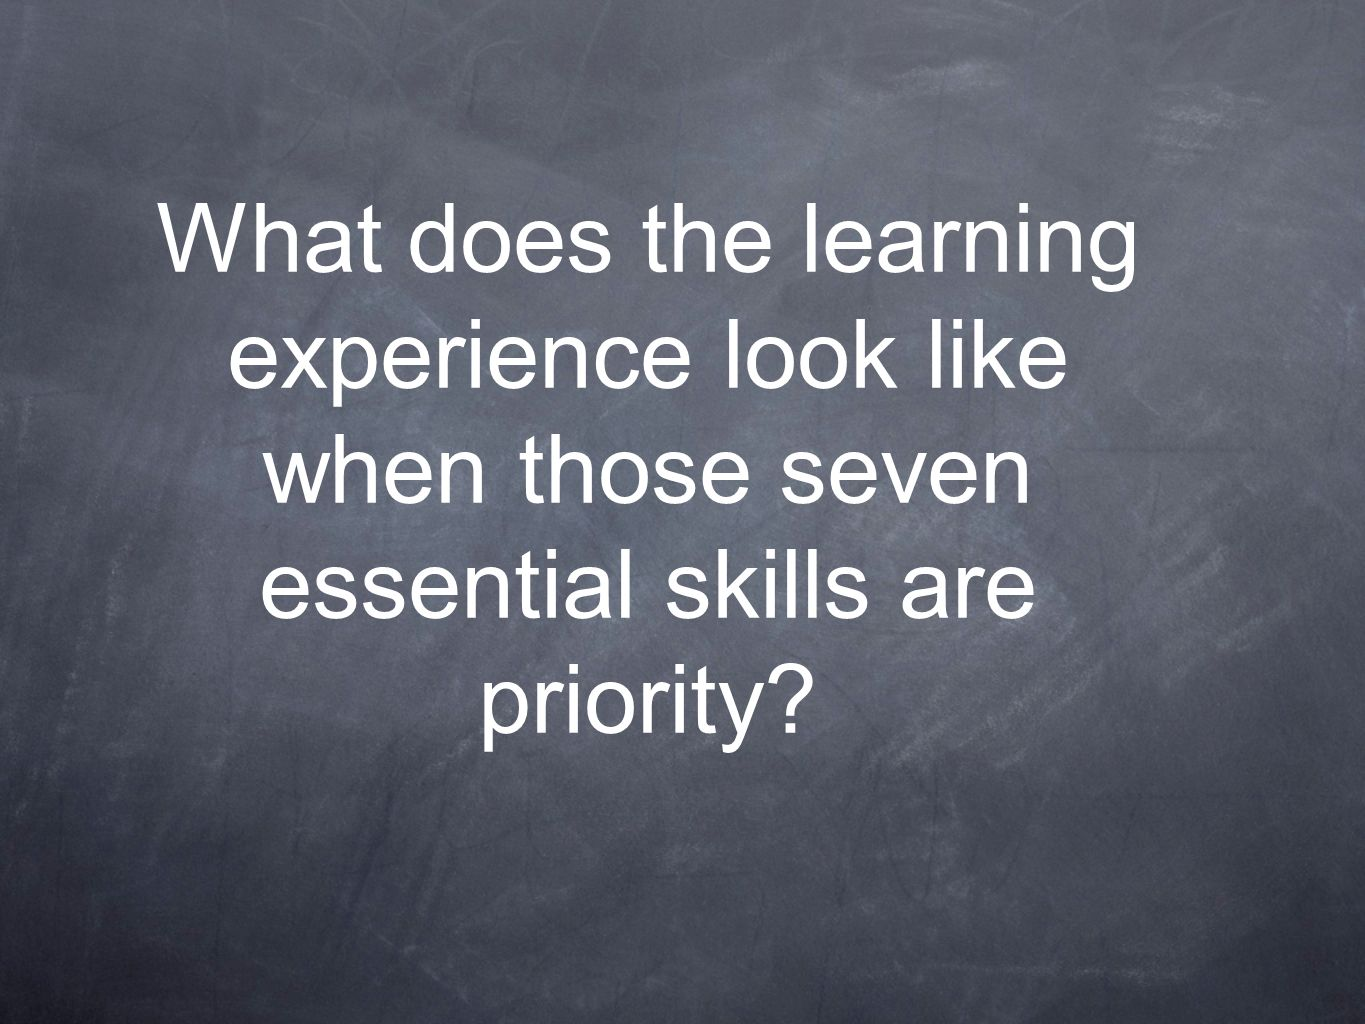 What does the learning experience look like when those seven essential skills are priority